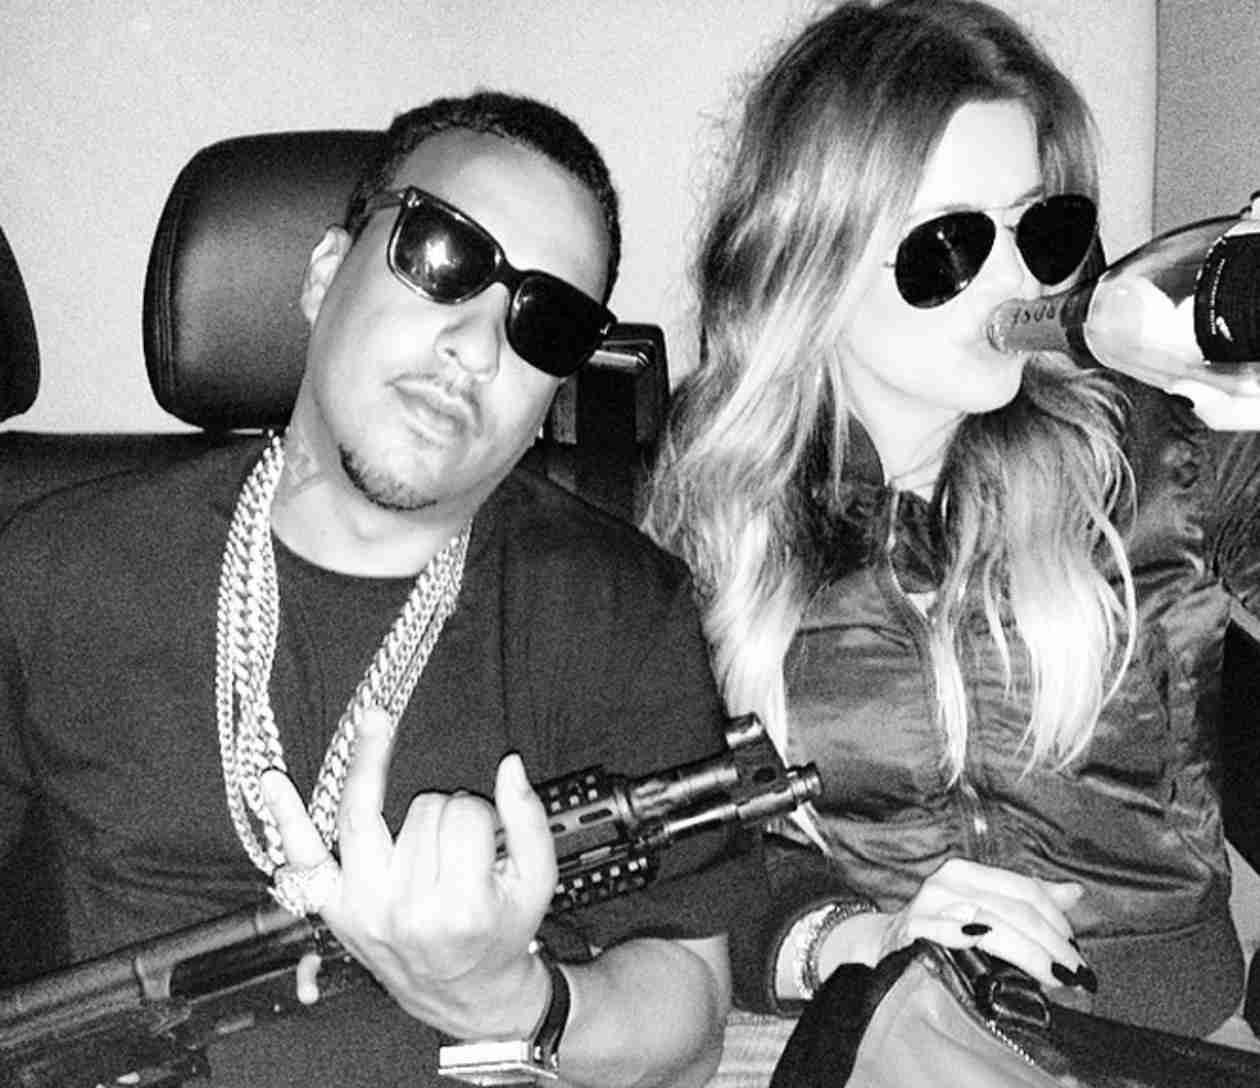 Are Khloe Kardashian and French Montana Close to Getting Engaged?